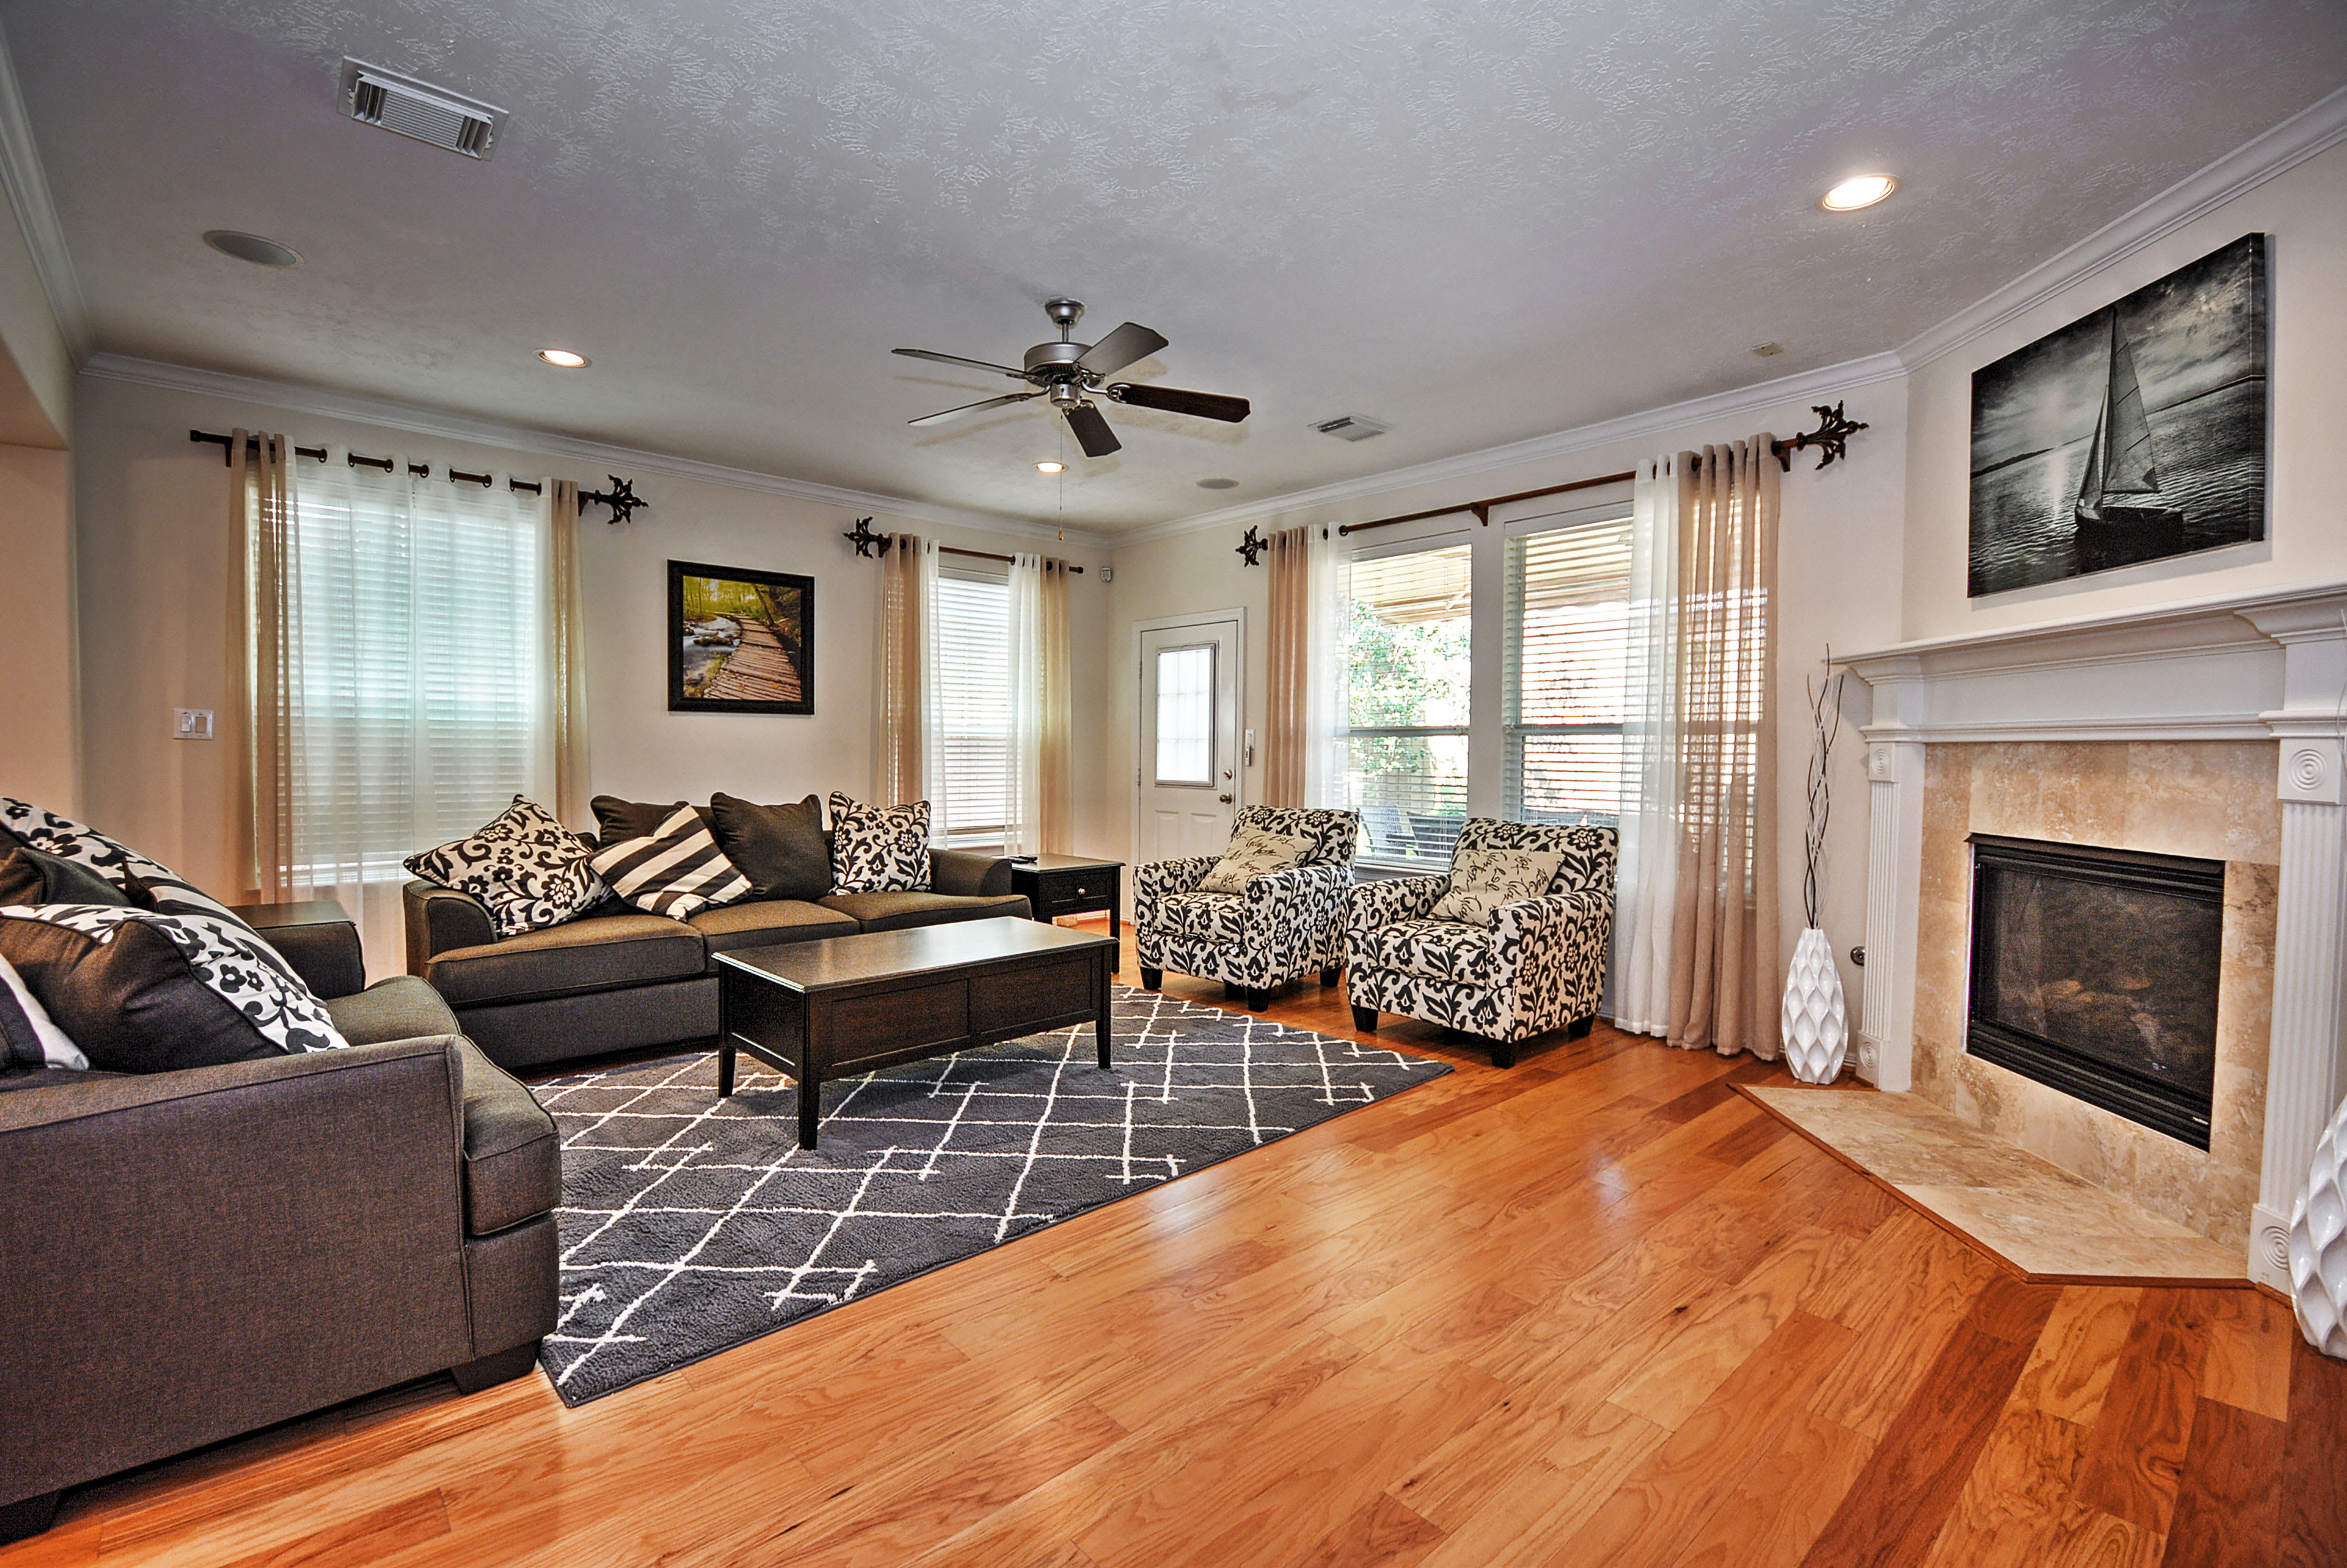 Relax in the living room and enjoy the modern amenities.